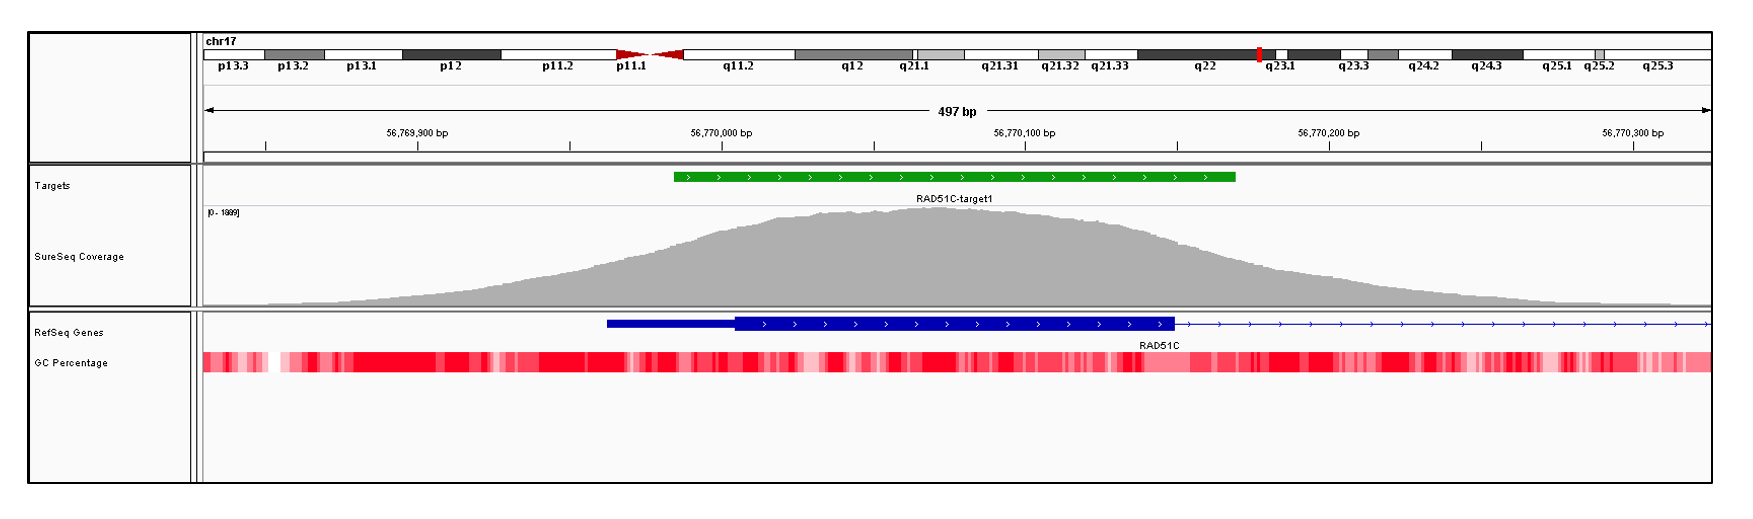 RAD51C Exon 1 (hg19 chr17:56769963-56770149). Depth of coverage per base (grey). Targeted region (green). Gene coding region as defined by RefSeq (blue). GC percentage (red). Image